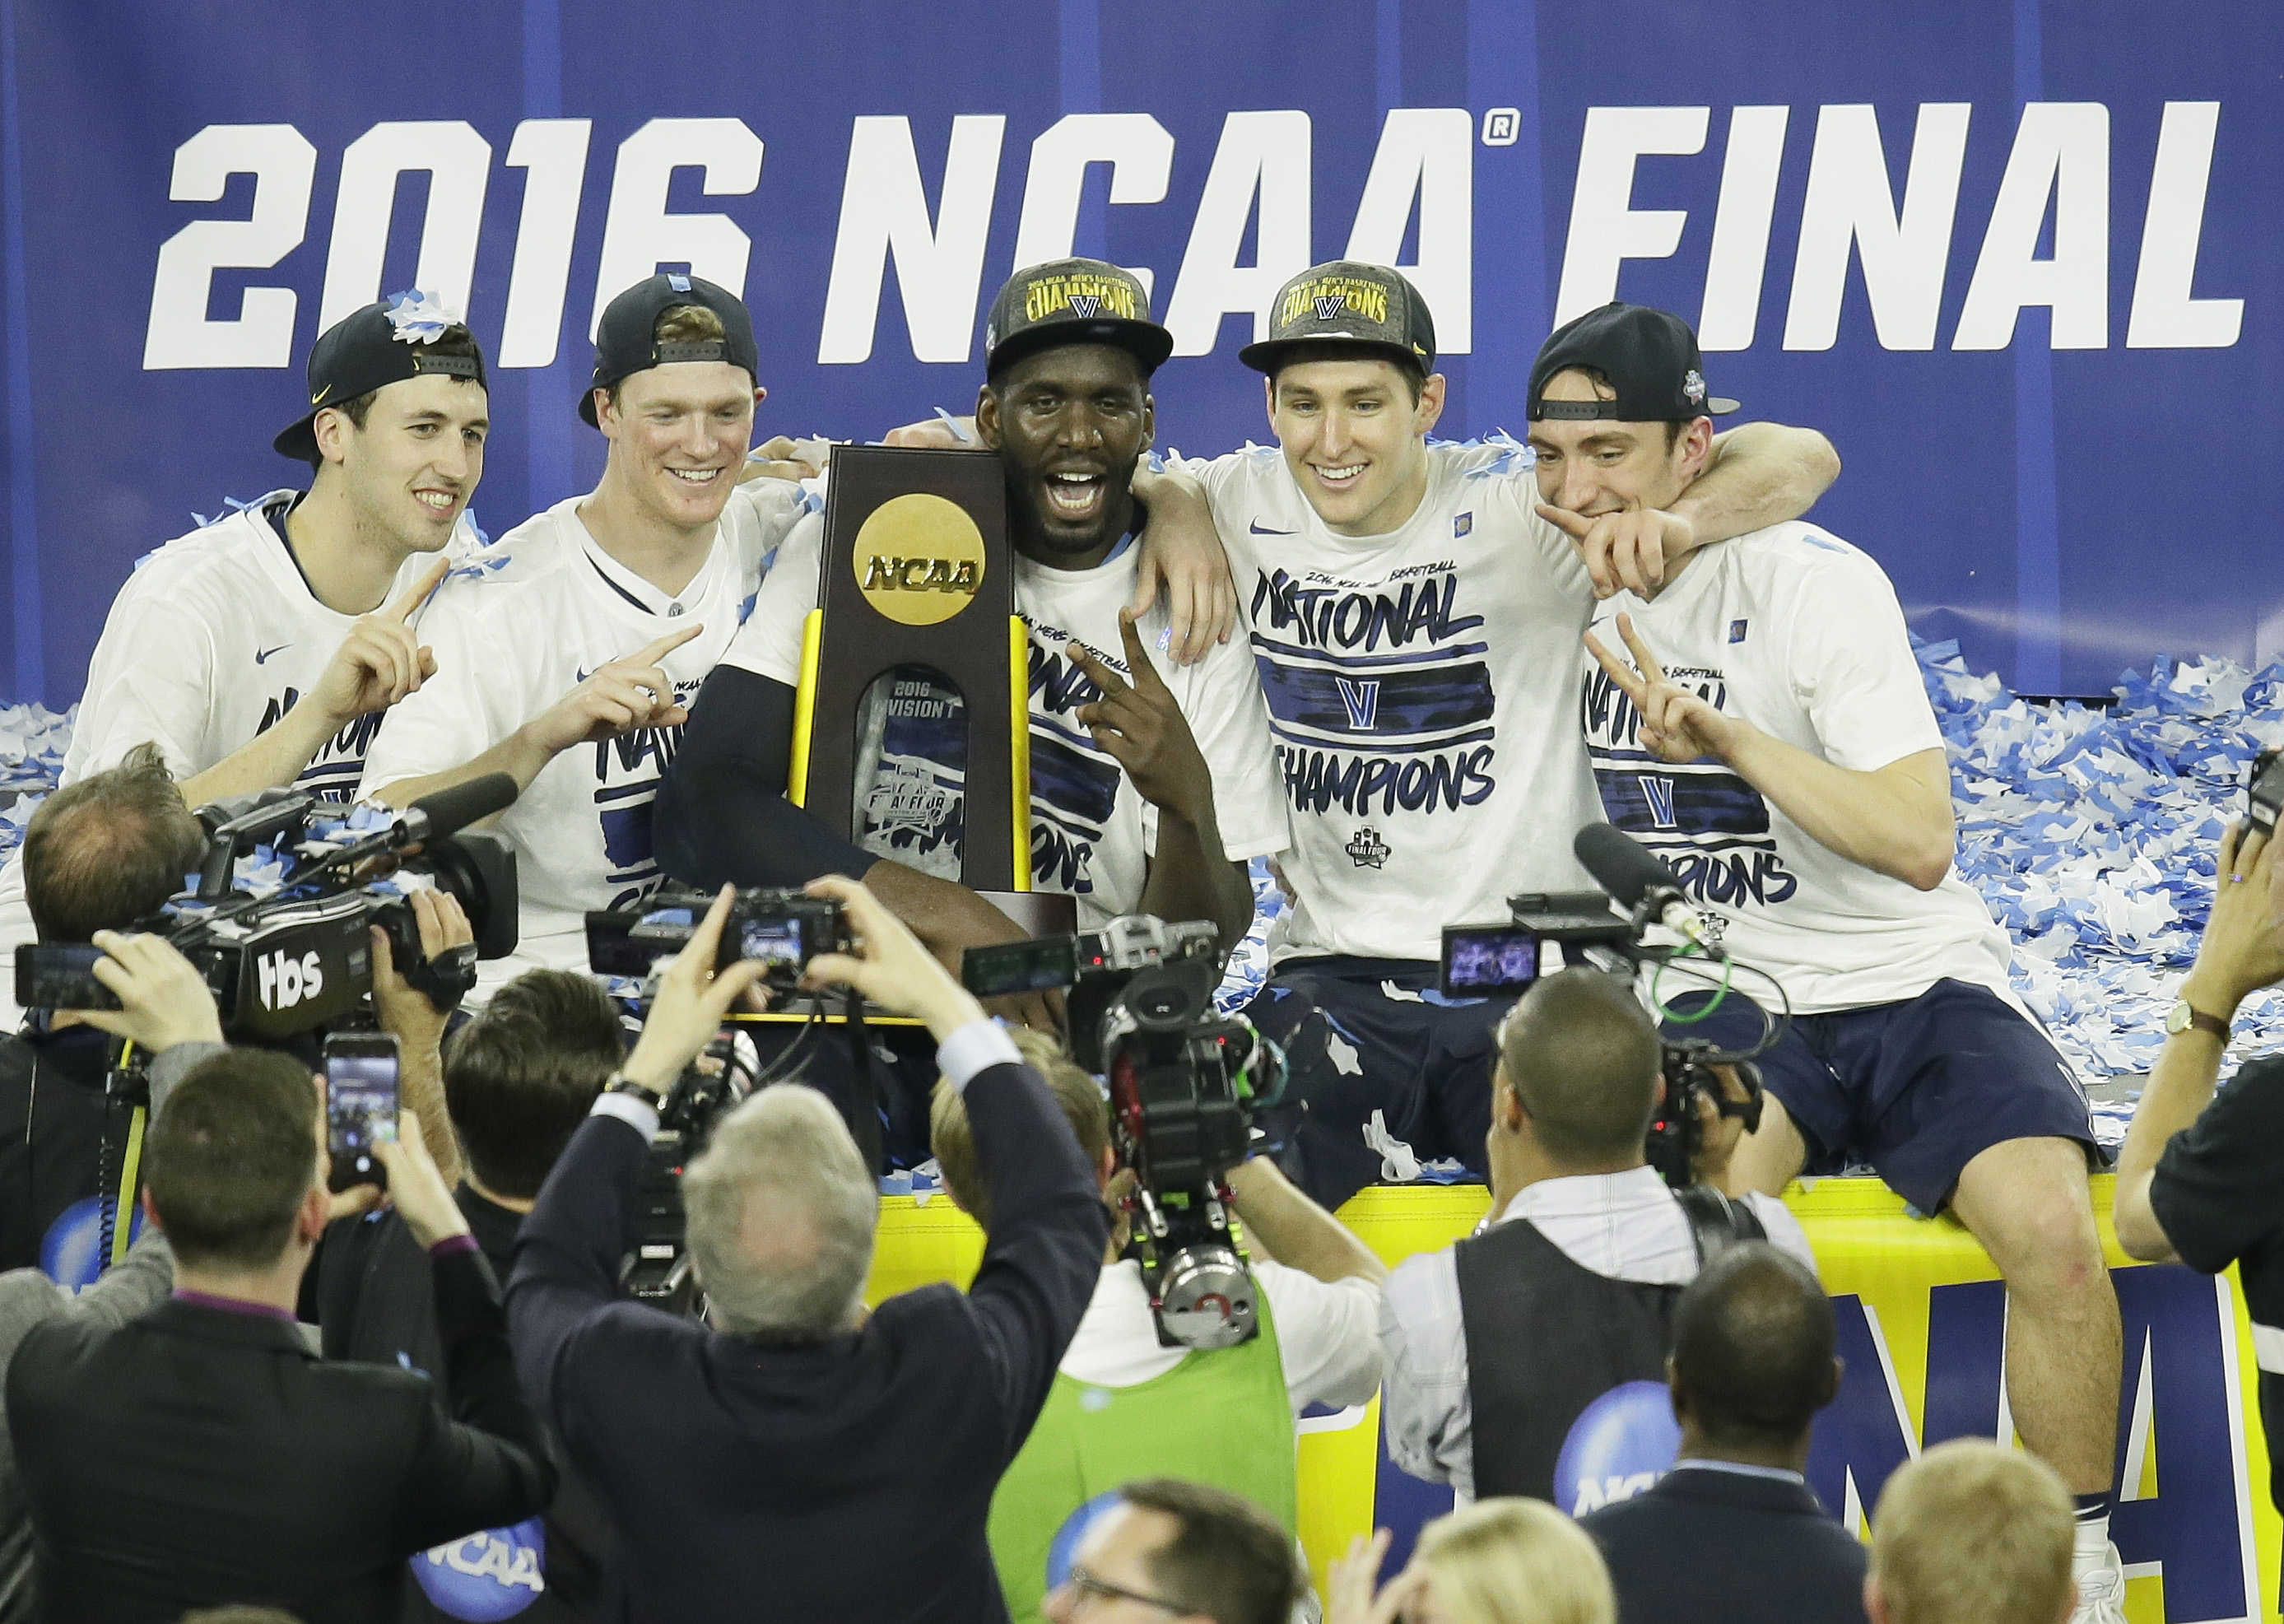 Villanova players celebrate after the NCAA Final Four tournament college basketball championship game against North Carolina, Monday, April 4, 2016, in Houston. Villanova won 77-74. (AP Photo/Charlie Neibergall)